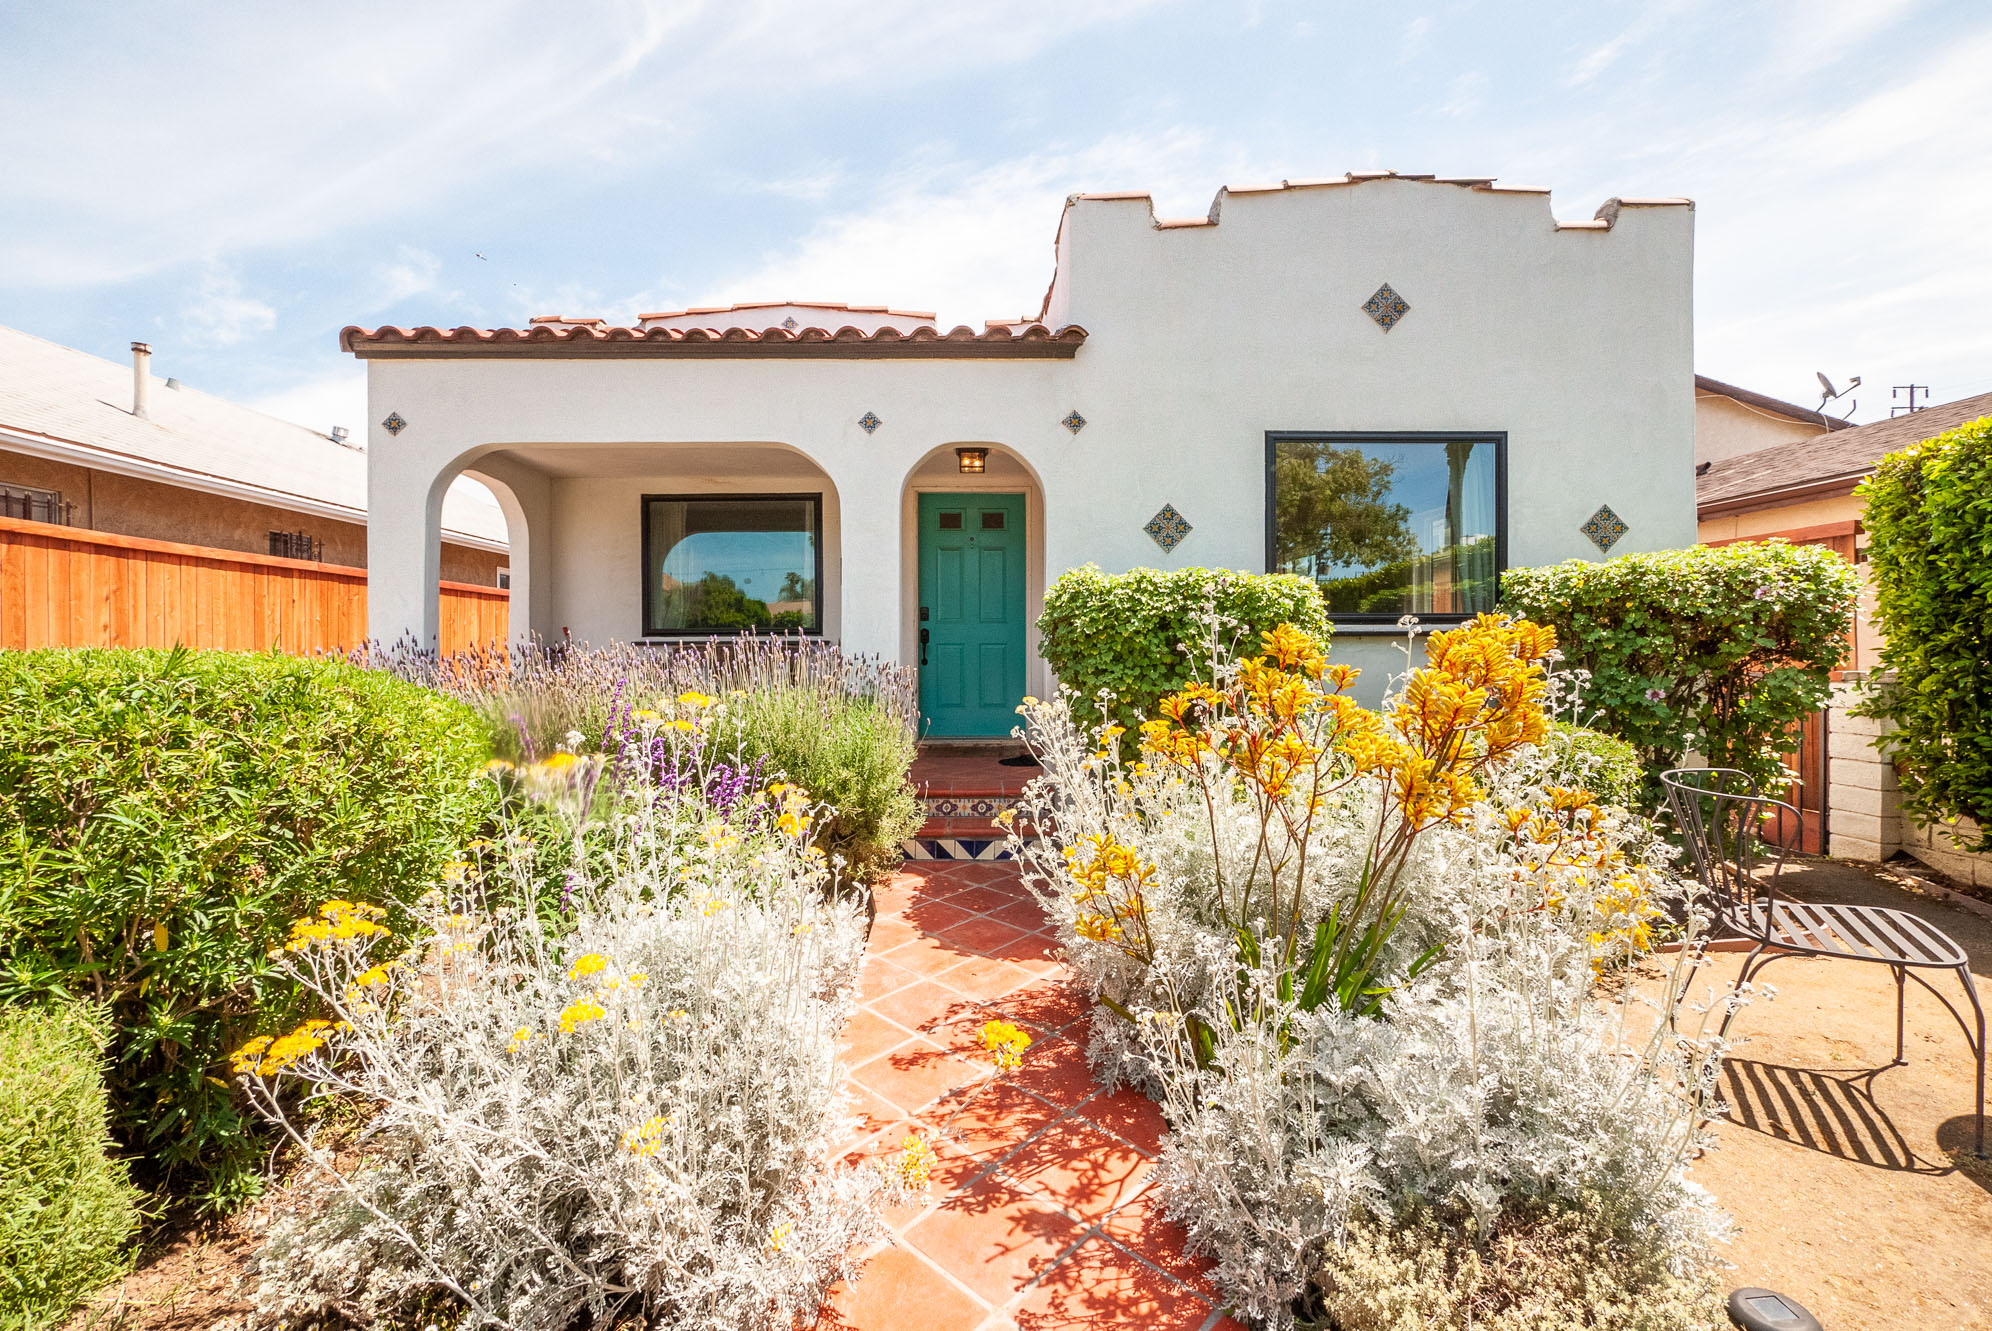 Spanish dream home in Atwater Village! 3/2 with gorgeous kitchen and bath!